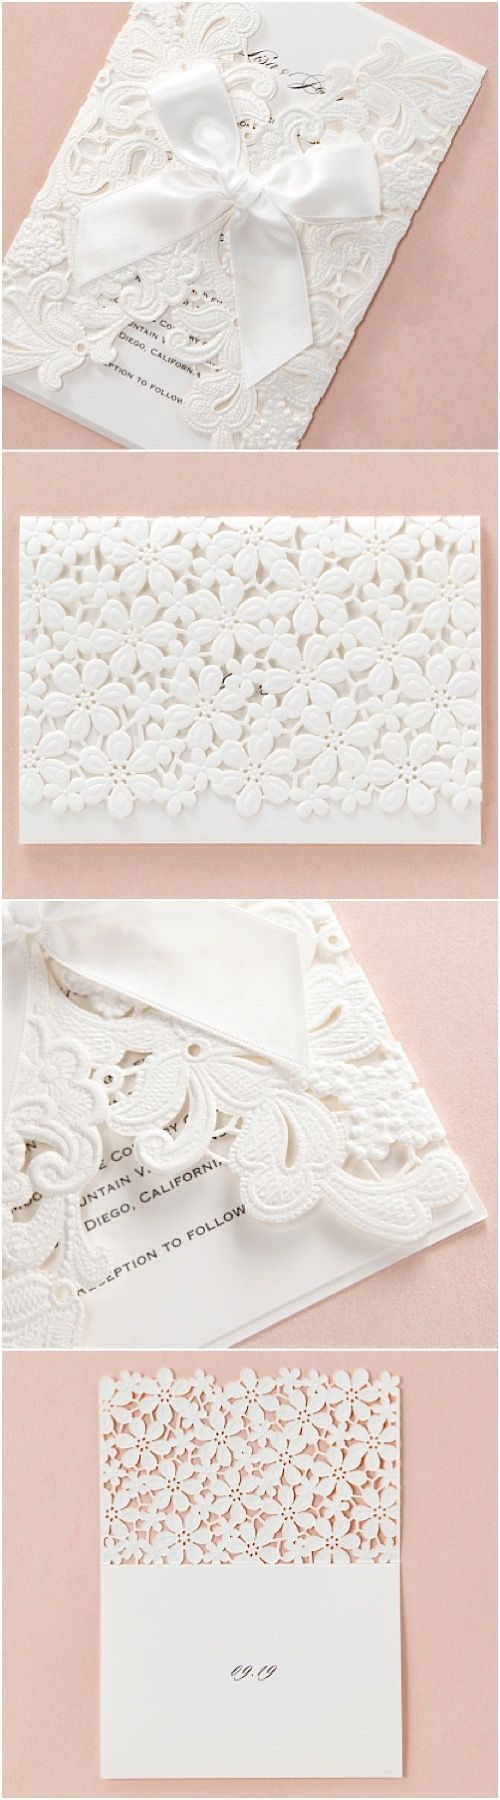 wedding lace embossed lasercut wedding stationery by B Wedding Invitations